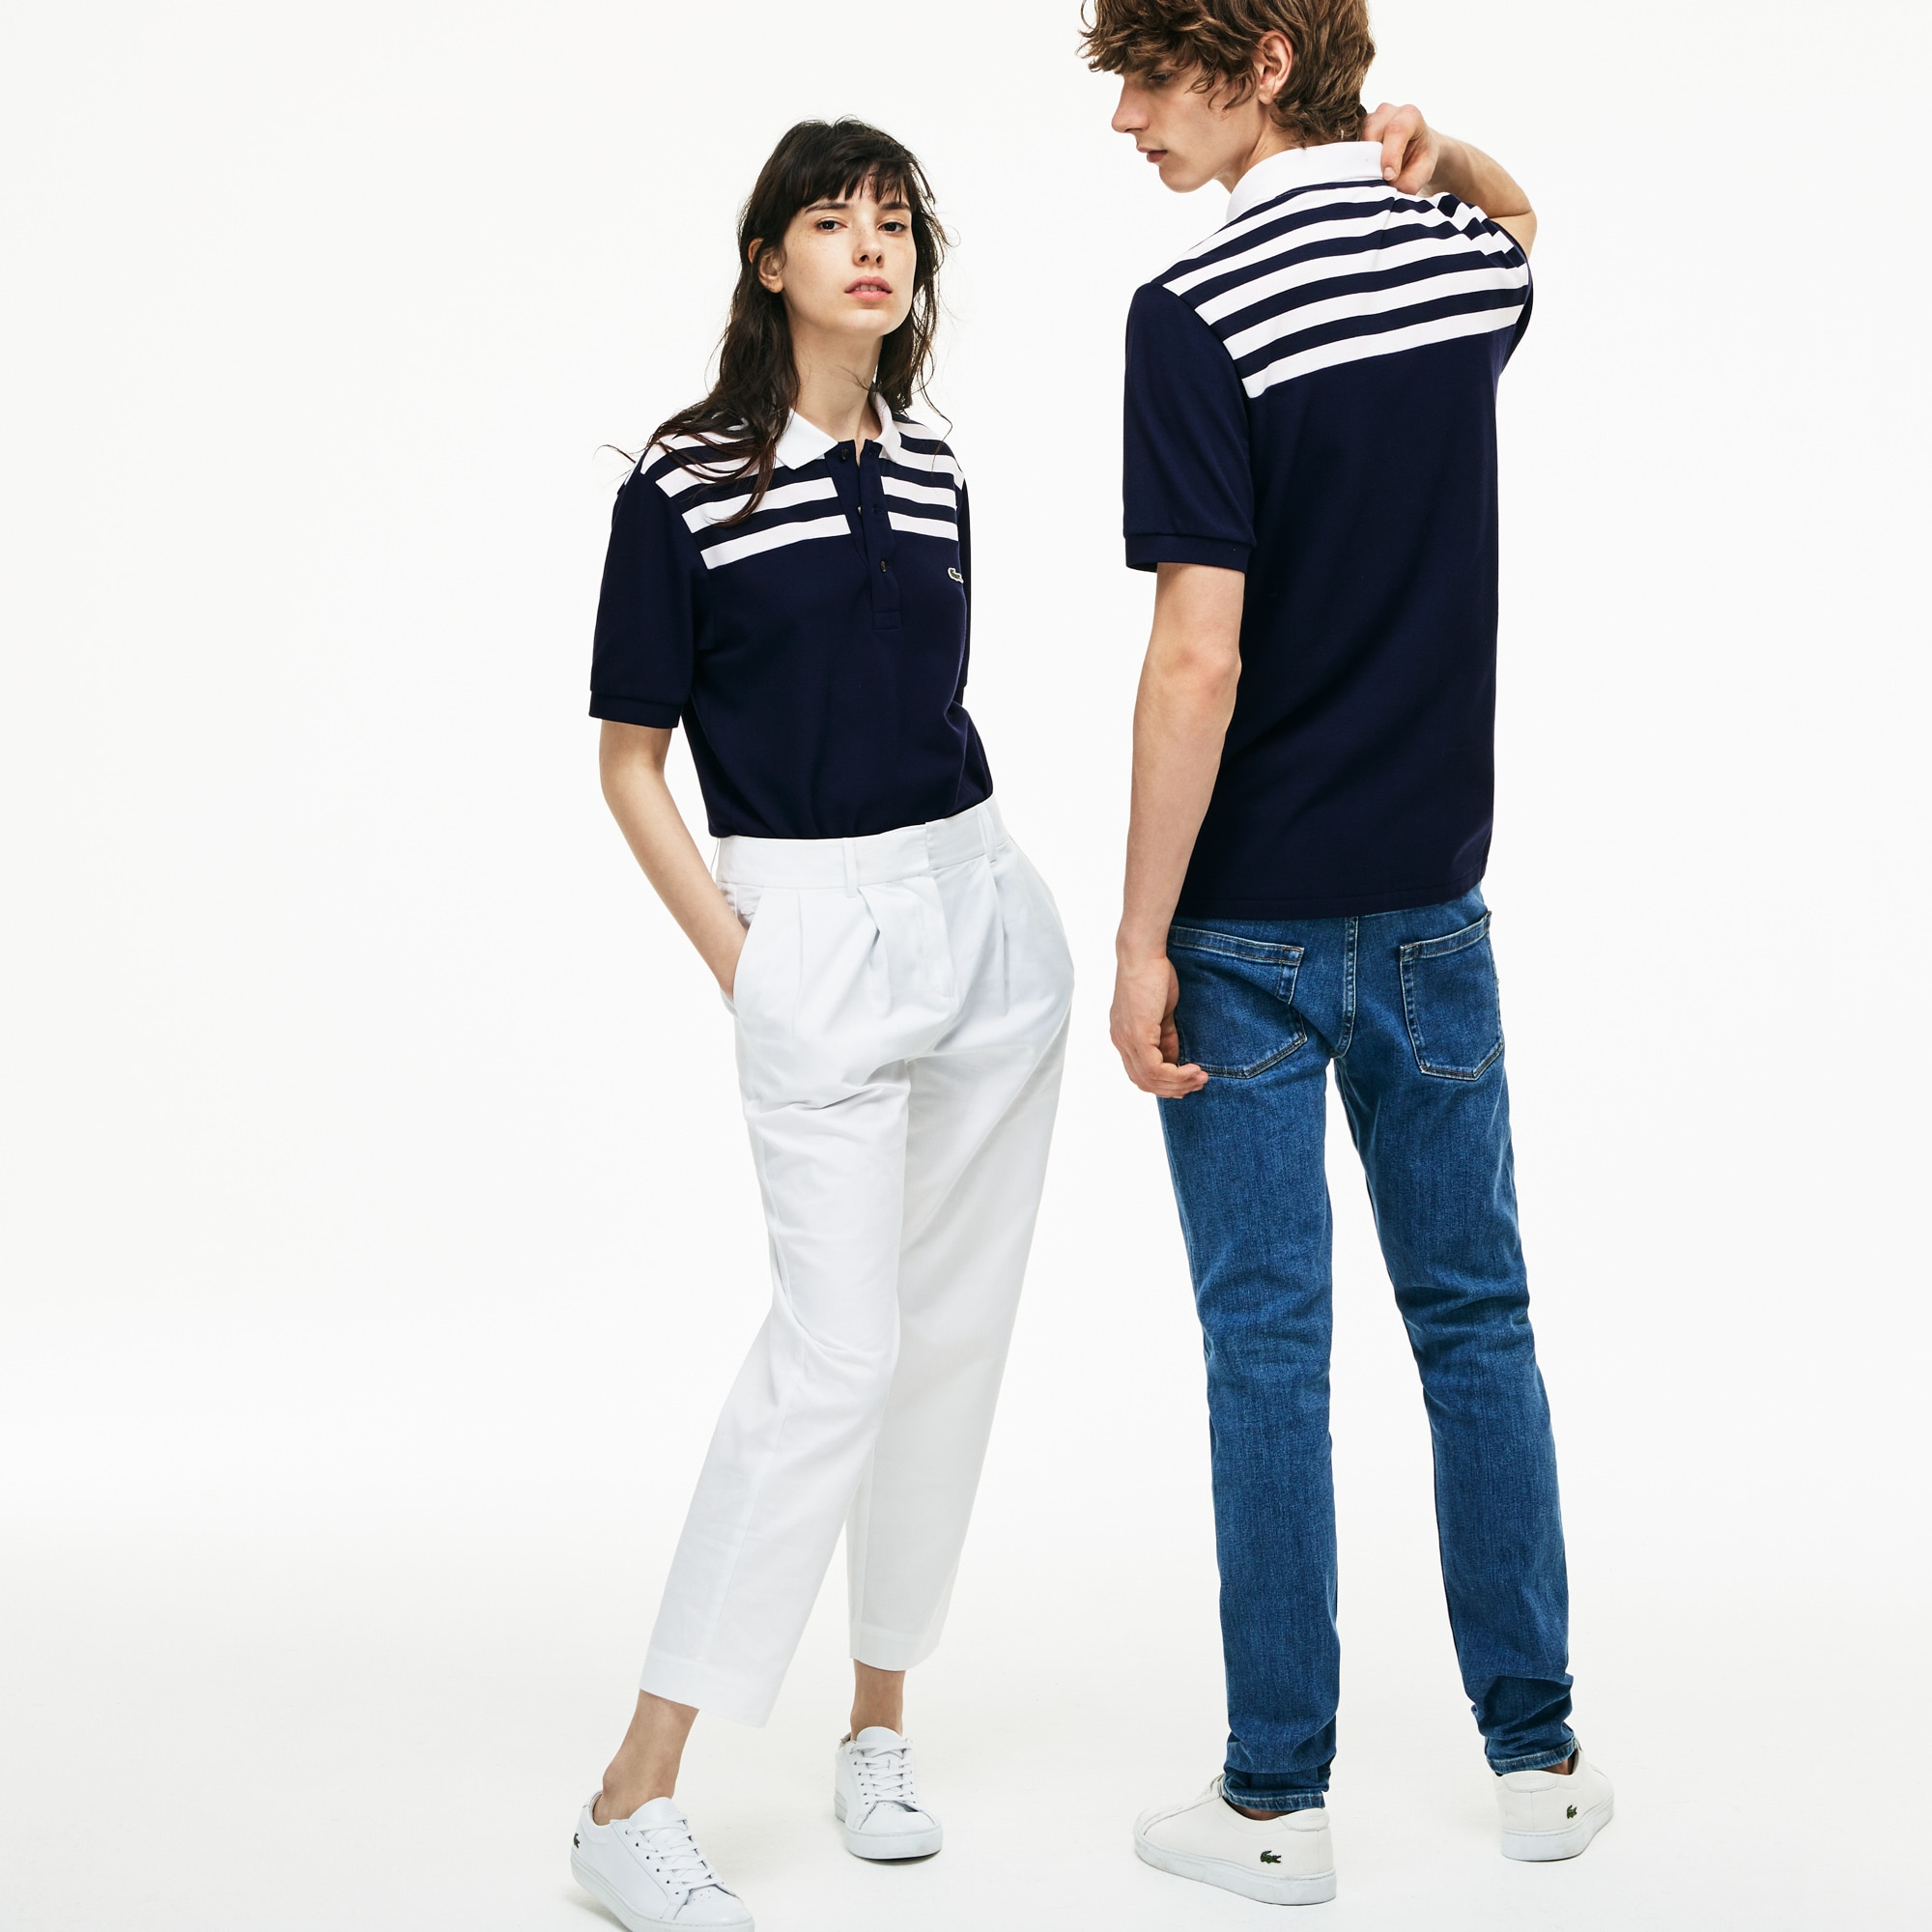 Unisex LACOSTE L.12.12 85th Anniversary Limited Edition Poloshirt